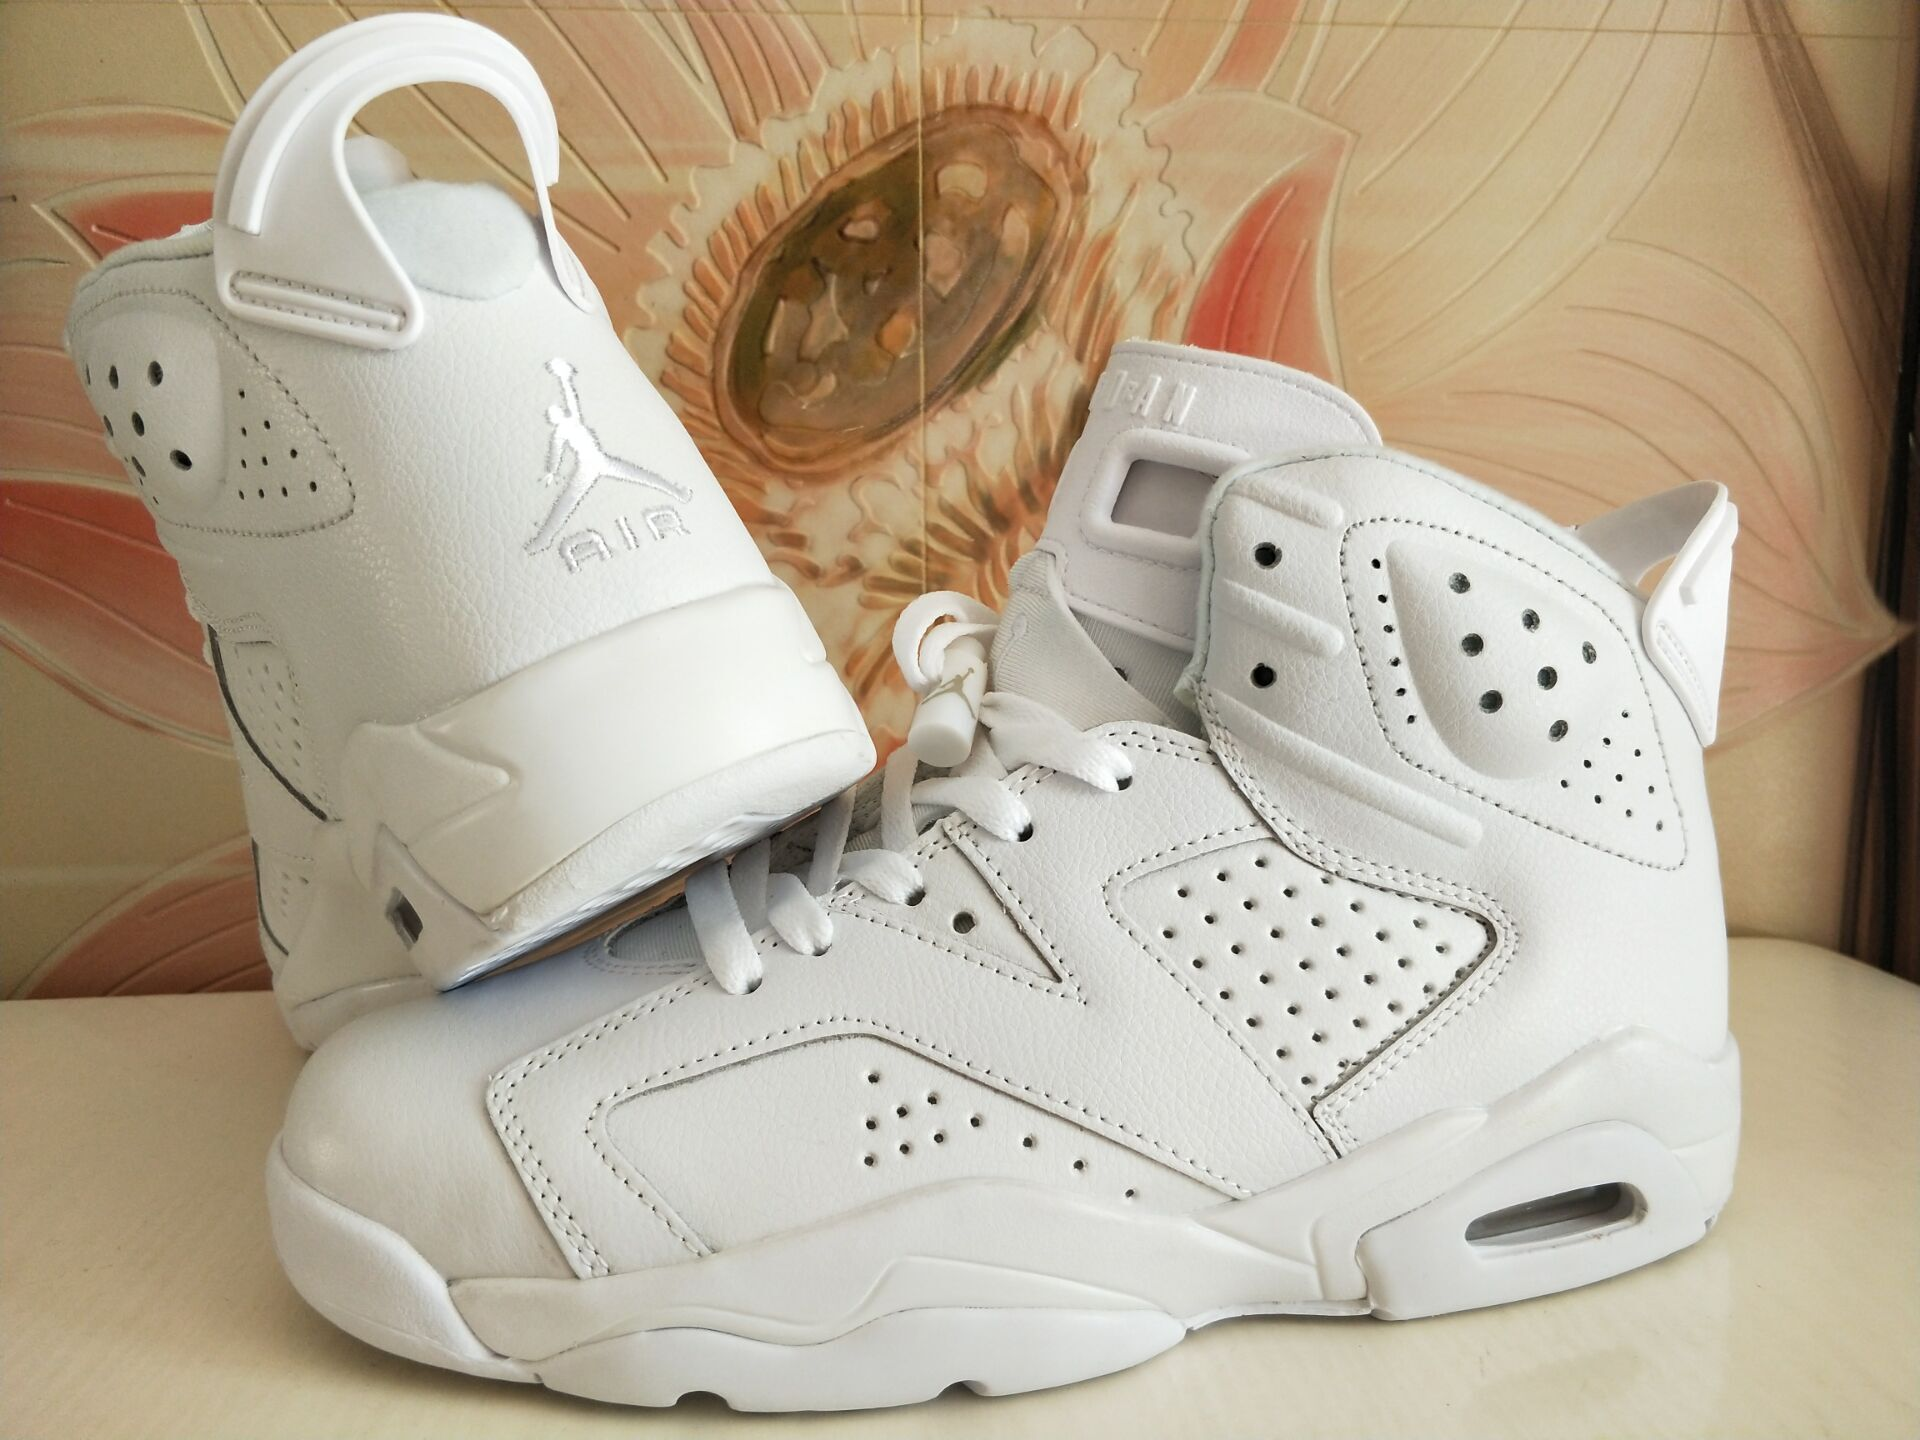 New Air Jordan 6 Retro All White Women Shoes